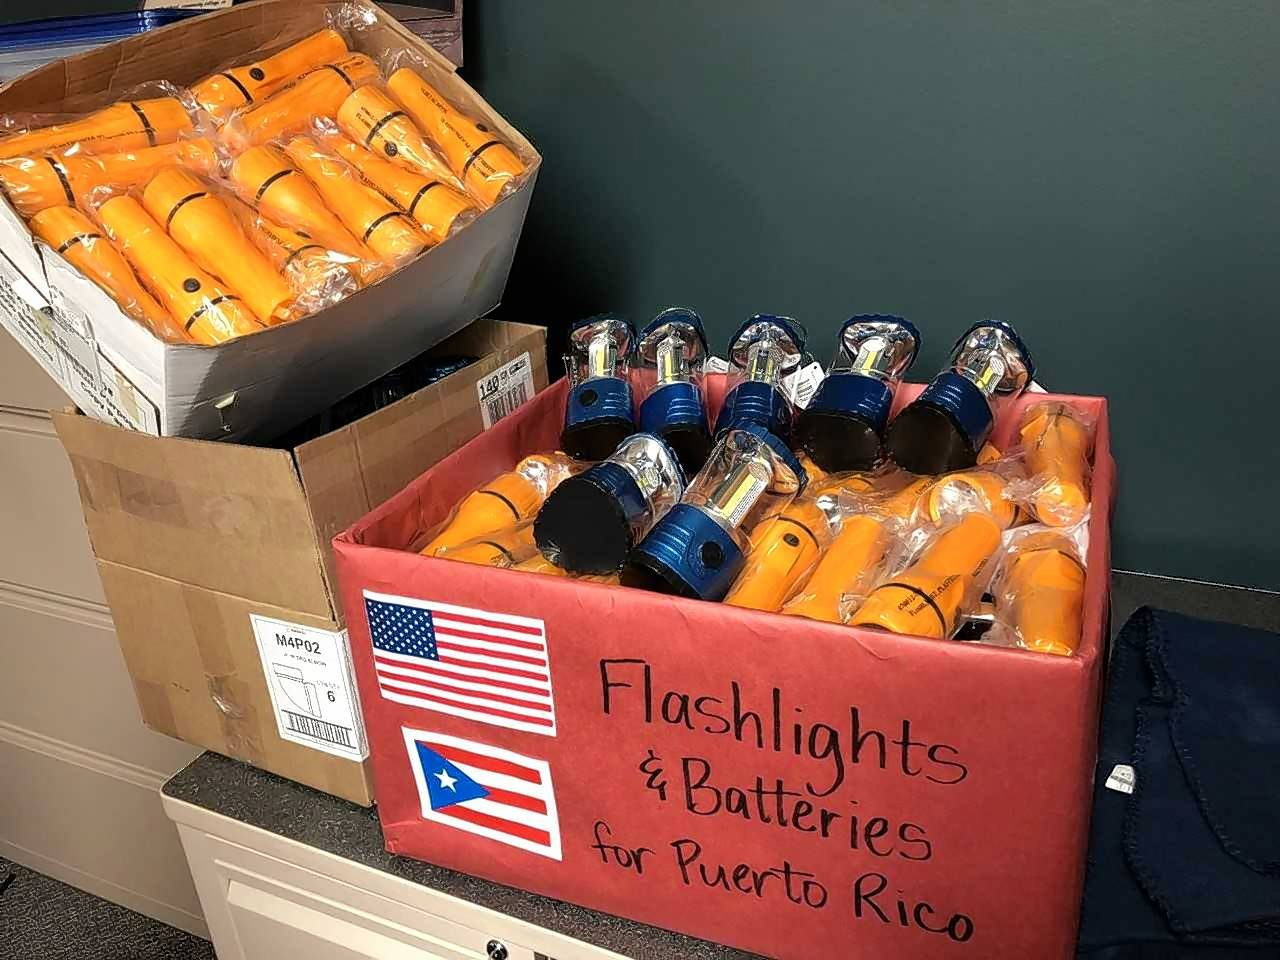 Elgin Area School District U-46 students and staff members have raised more than $7,200 for hurricane and earthquake relief efforts in Puerto Rico and Mexico, including flashlights for Puerto Rico.